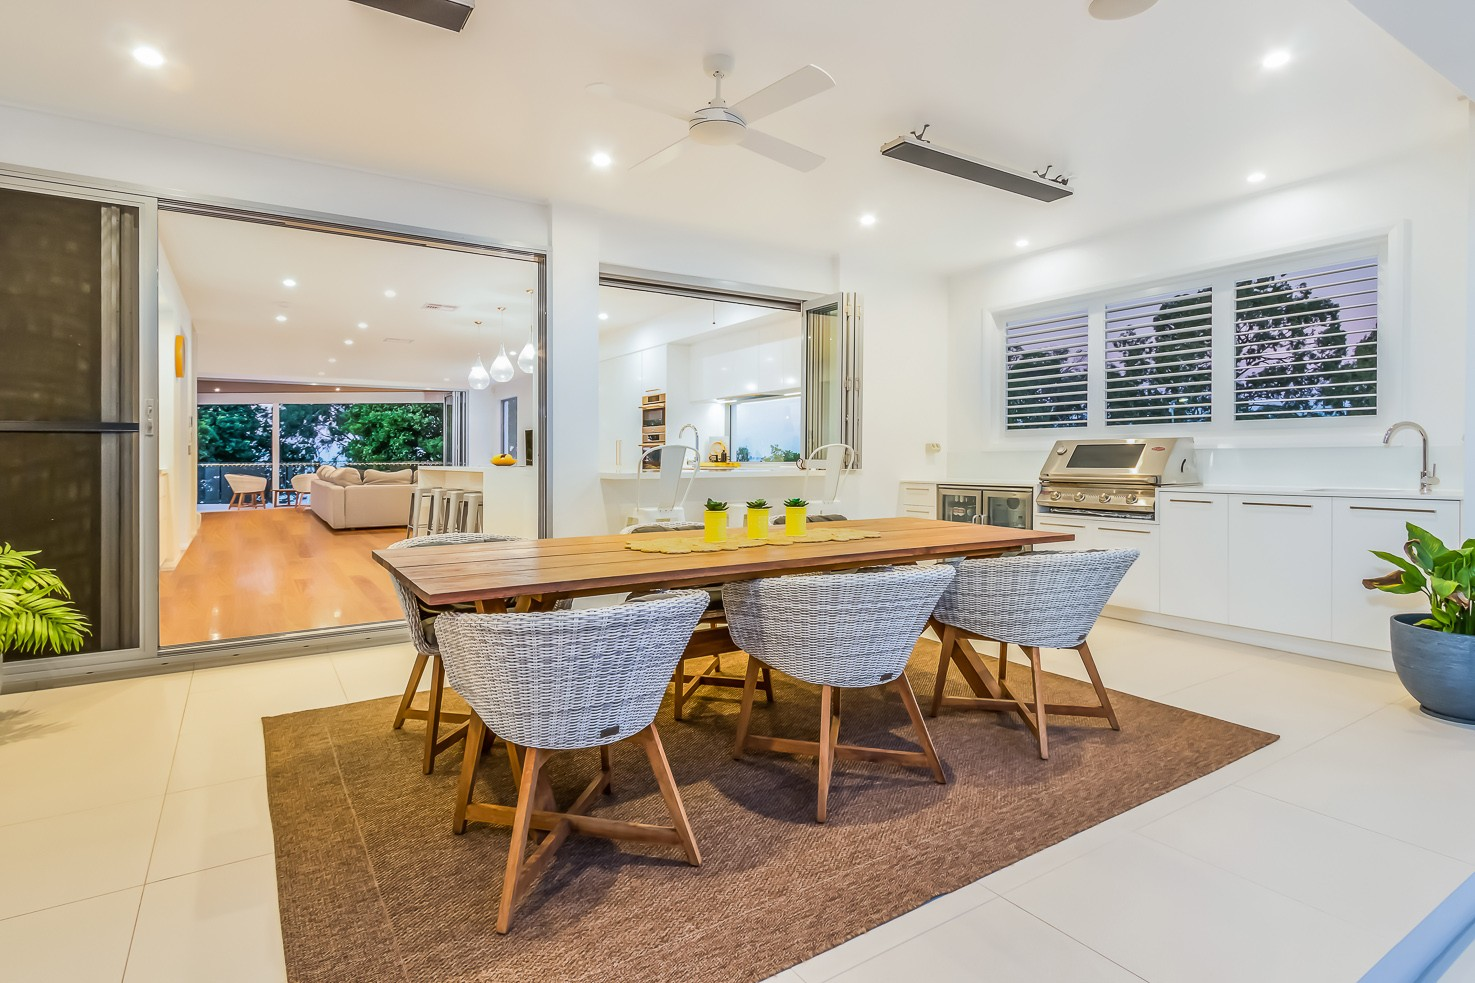 Brisbane Manly contemporary home by evermore looking back into the kitchen from the rear